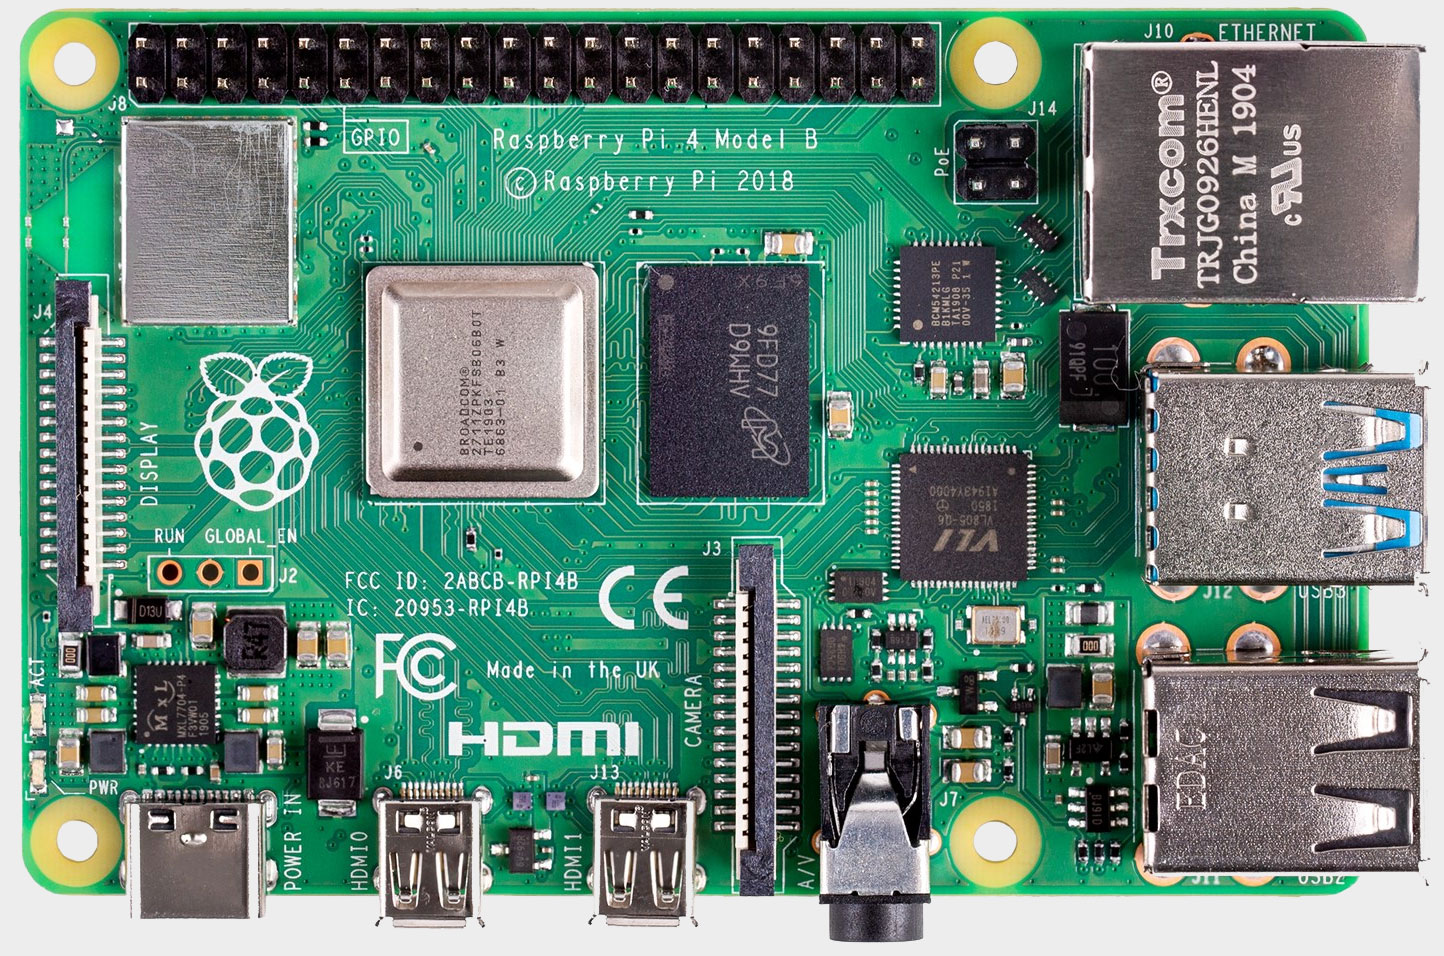 If you bought a Raspberry Pi 4, grab this firmware update to improve performance | PC Gamer